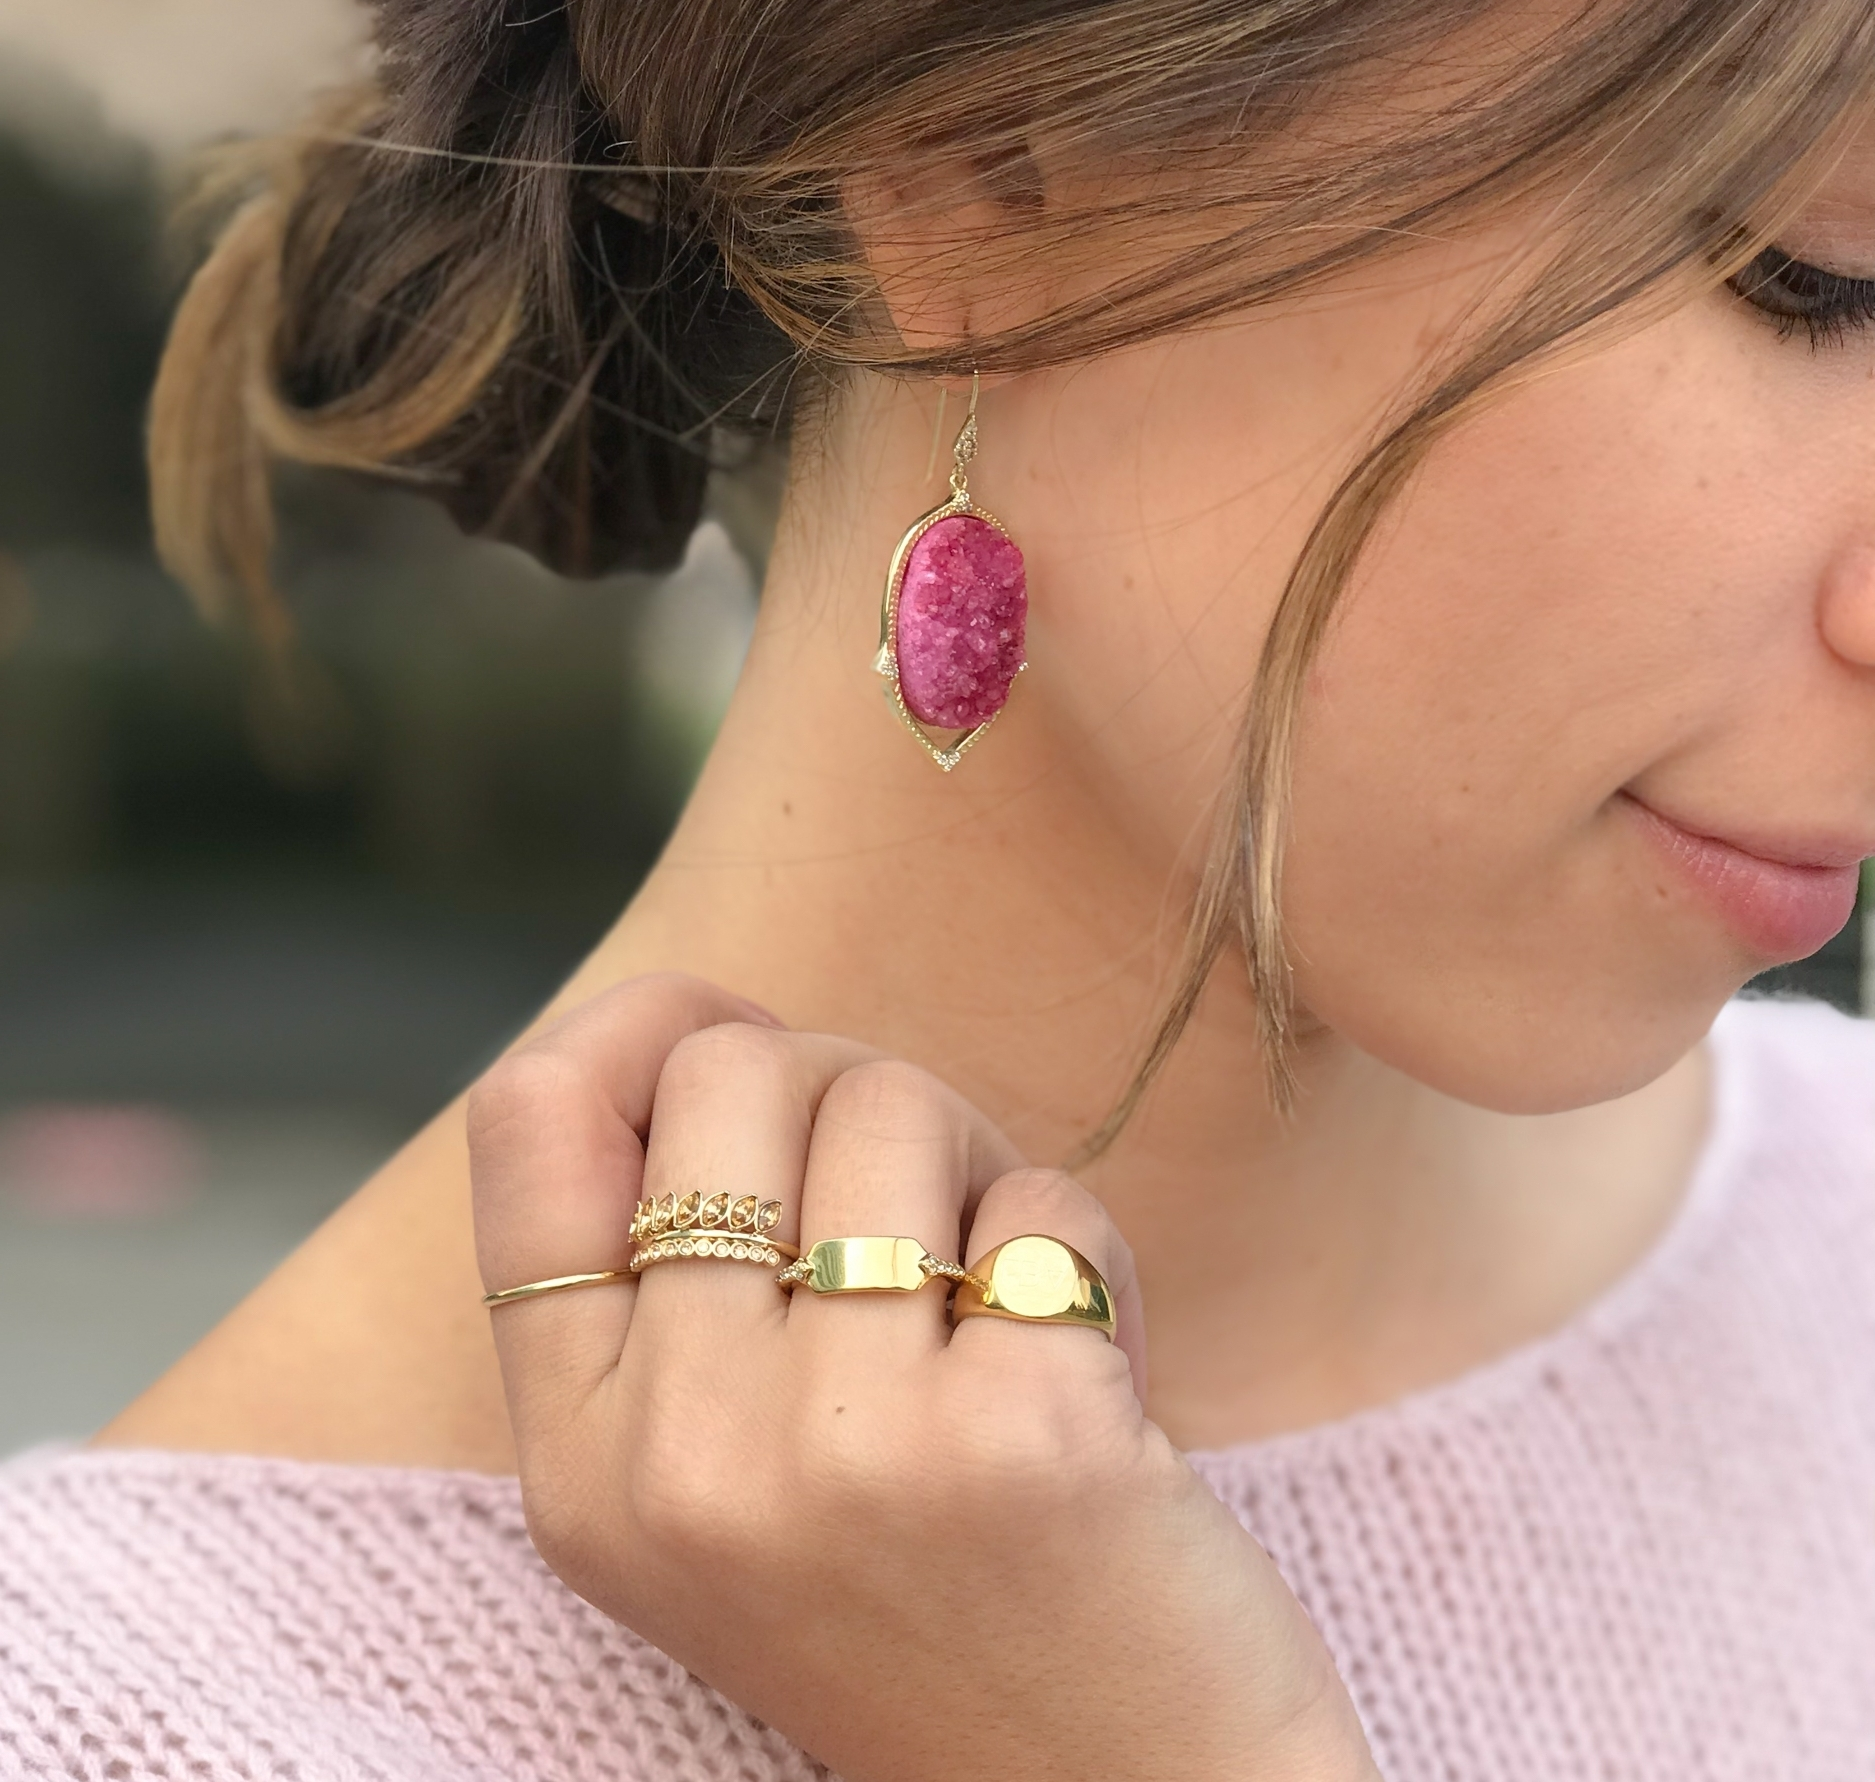 Monday - Ease the transition from weekend to workday with your favorite cozy sweater and matching earrings that will instantly lift your mood. A colorful druzy and monochromatic lookis put-together and polished.